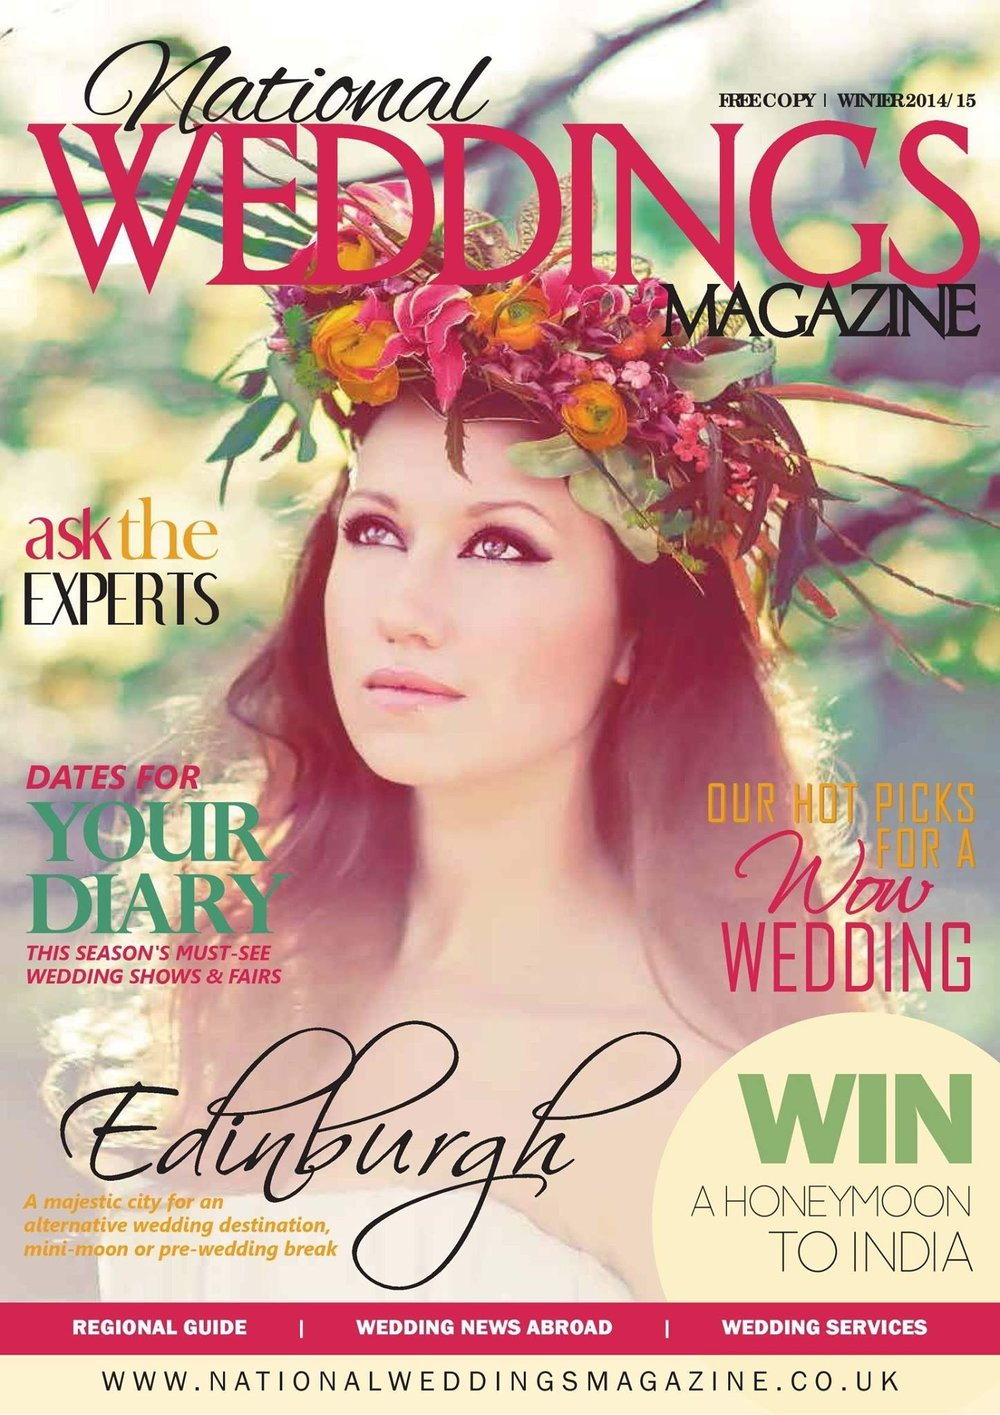 Charlotte Munro's Bridal Styling on the cover of National Weddings Magazine. Image by Sanshine Photography